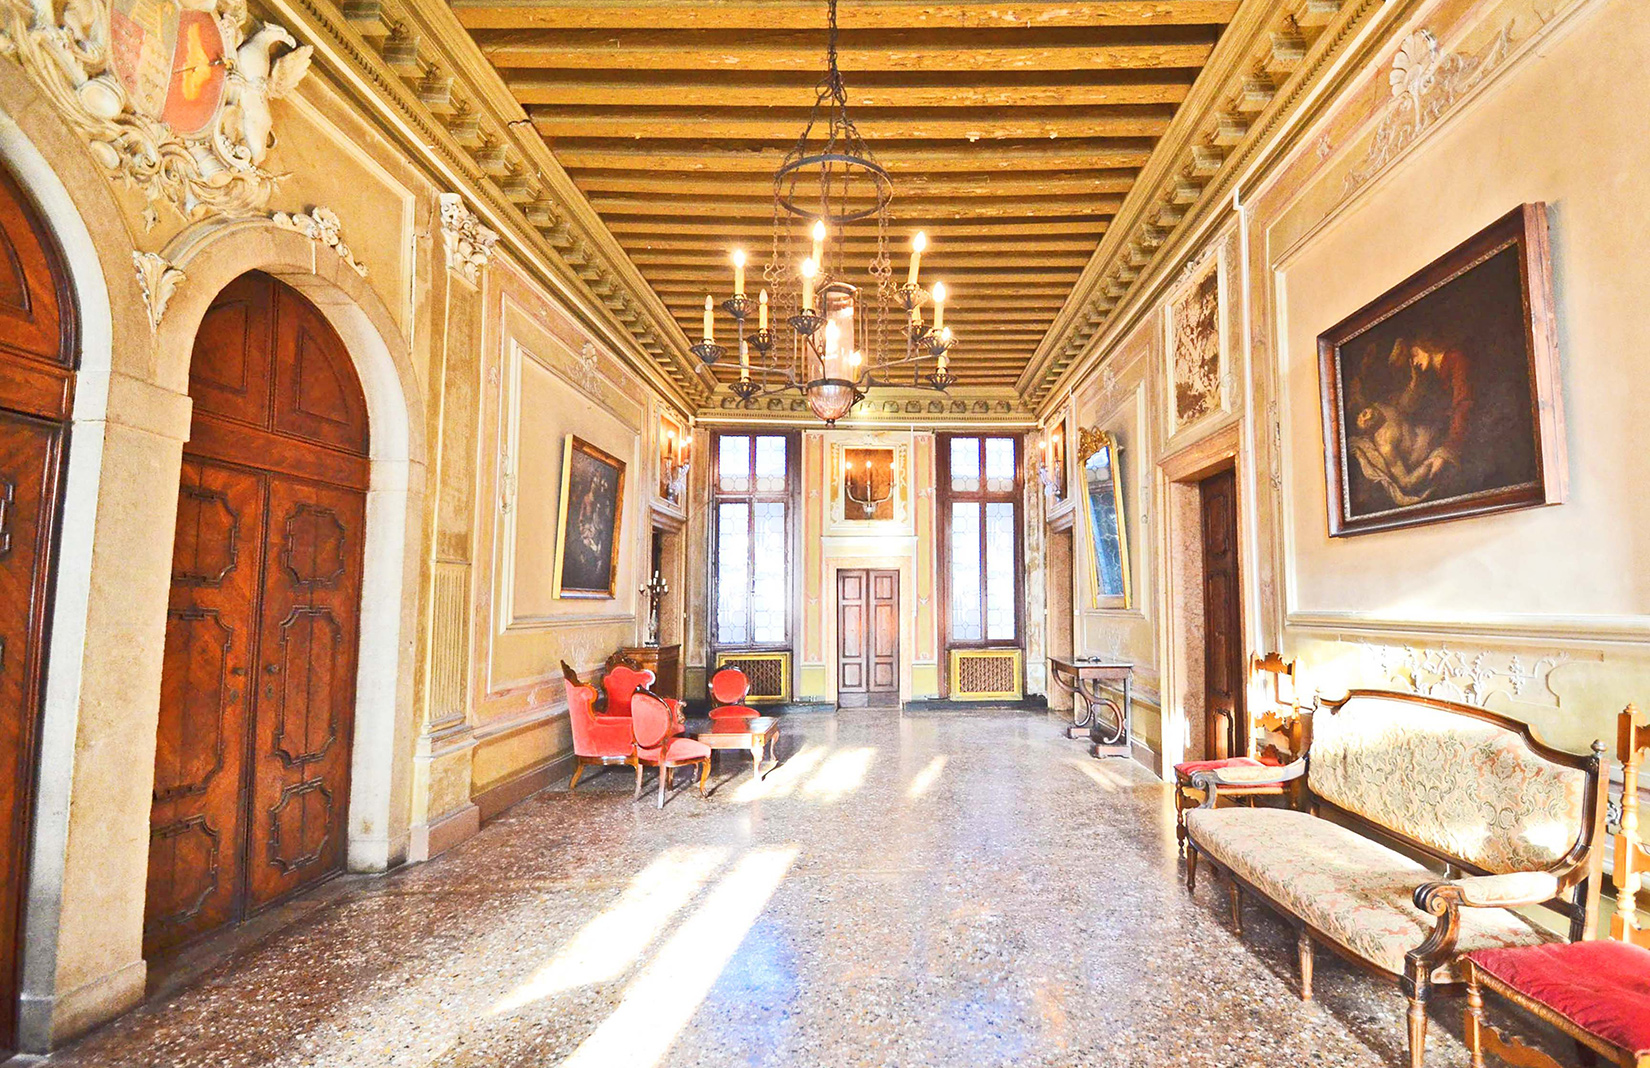 Surprising Property Of The Week The Venetian Home Of Friedrich Nietzsche Largest Home Design Picture Inspirations Pitcheantrous